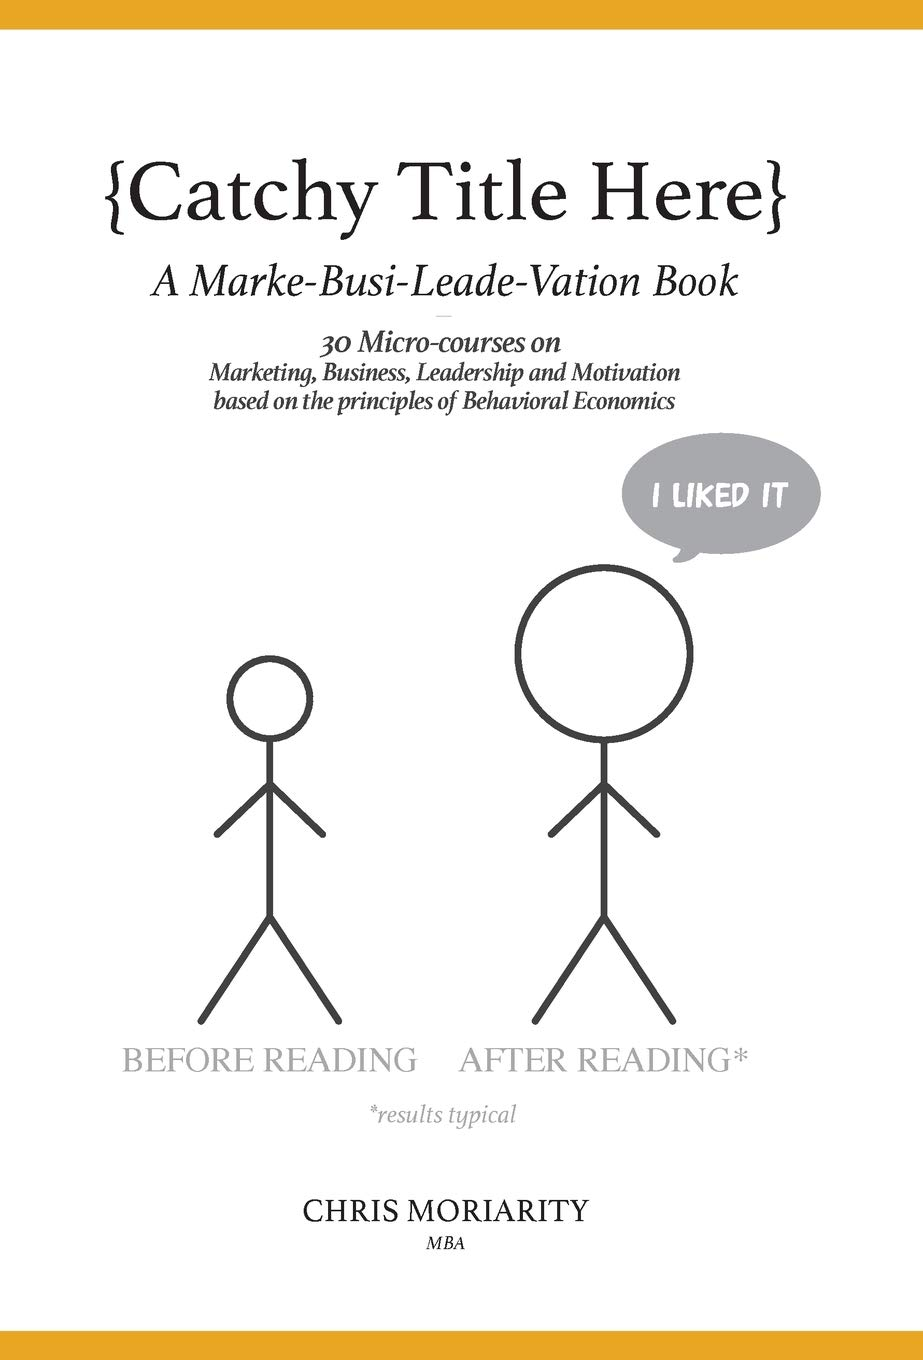 Catchy Title Here: A Marke-Busi-Leade-Vation Book